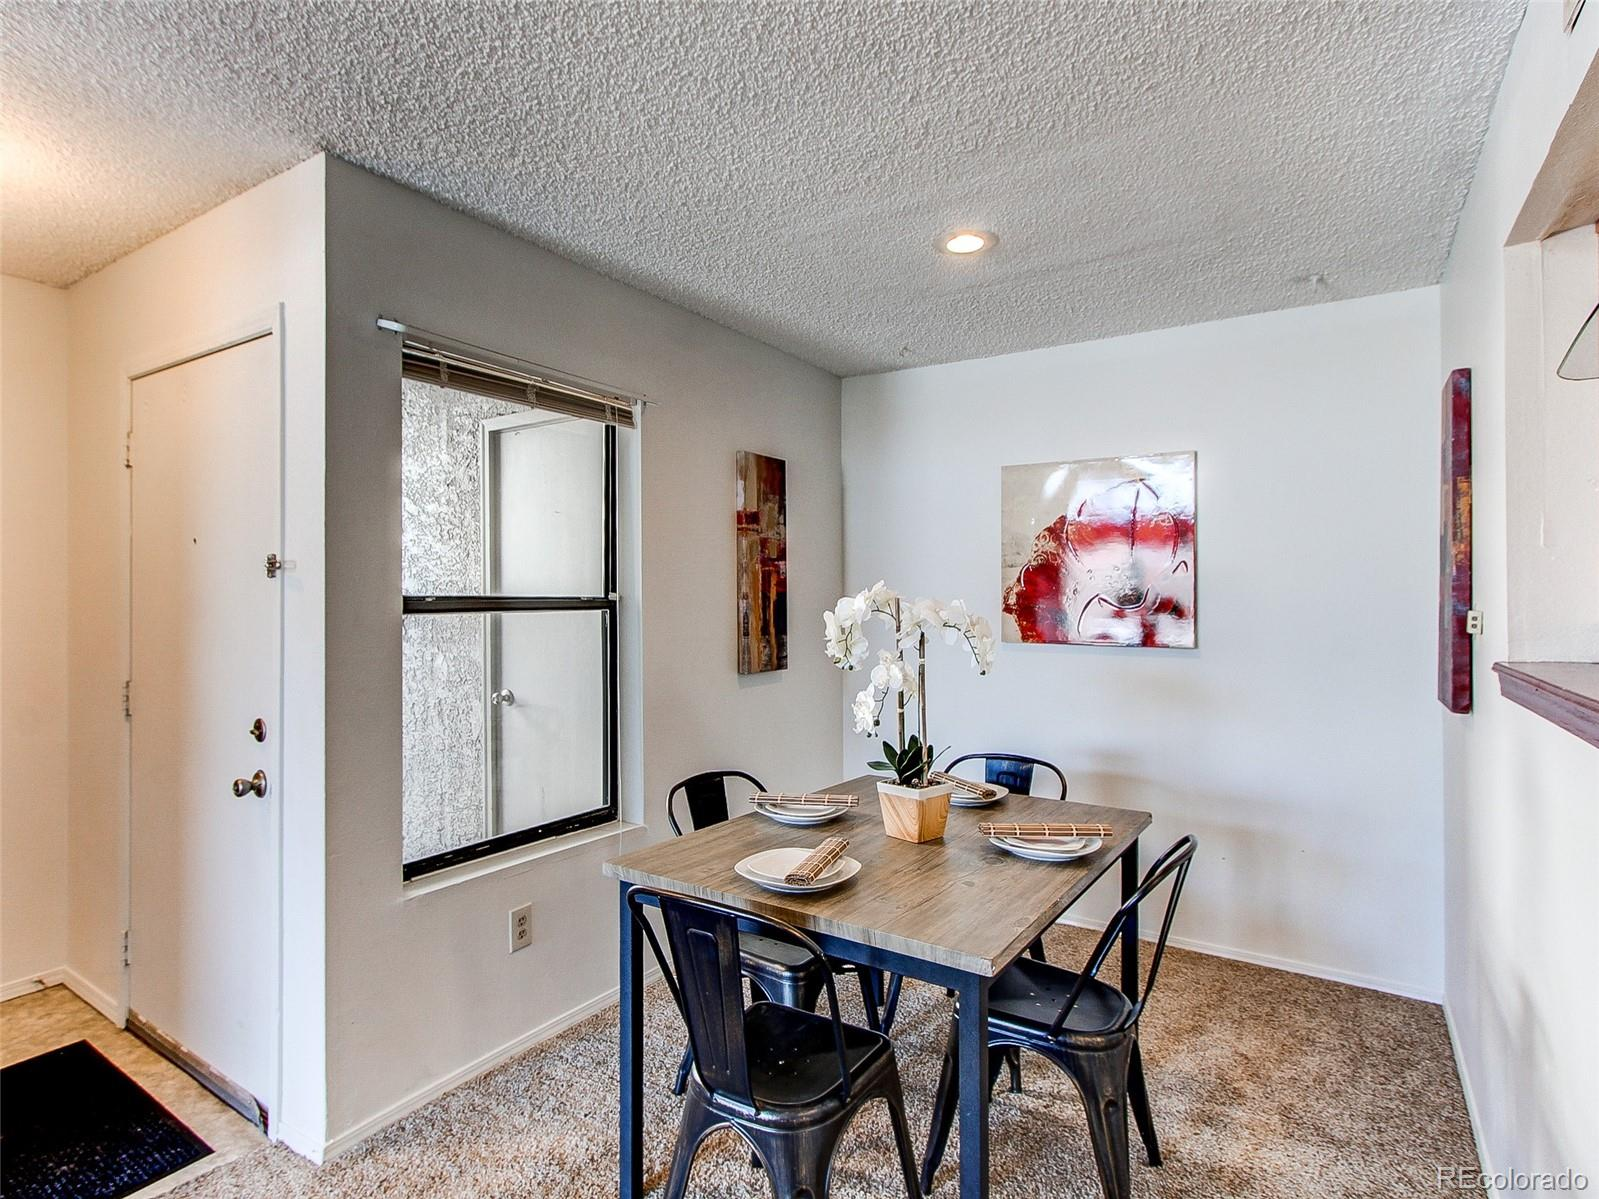 MLS# 7299791 - 6 - 1845 Kendall Street #207C, Lakewood, CO 80214